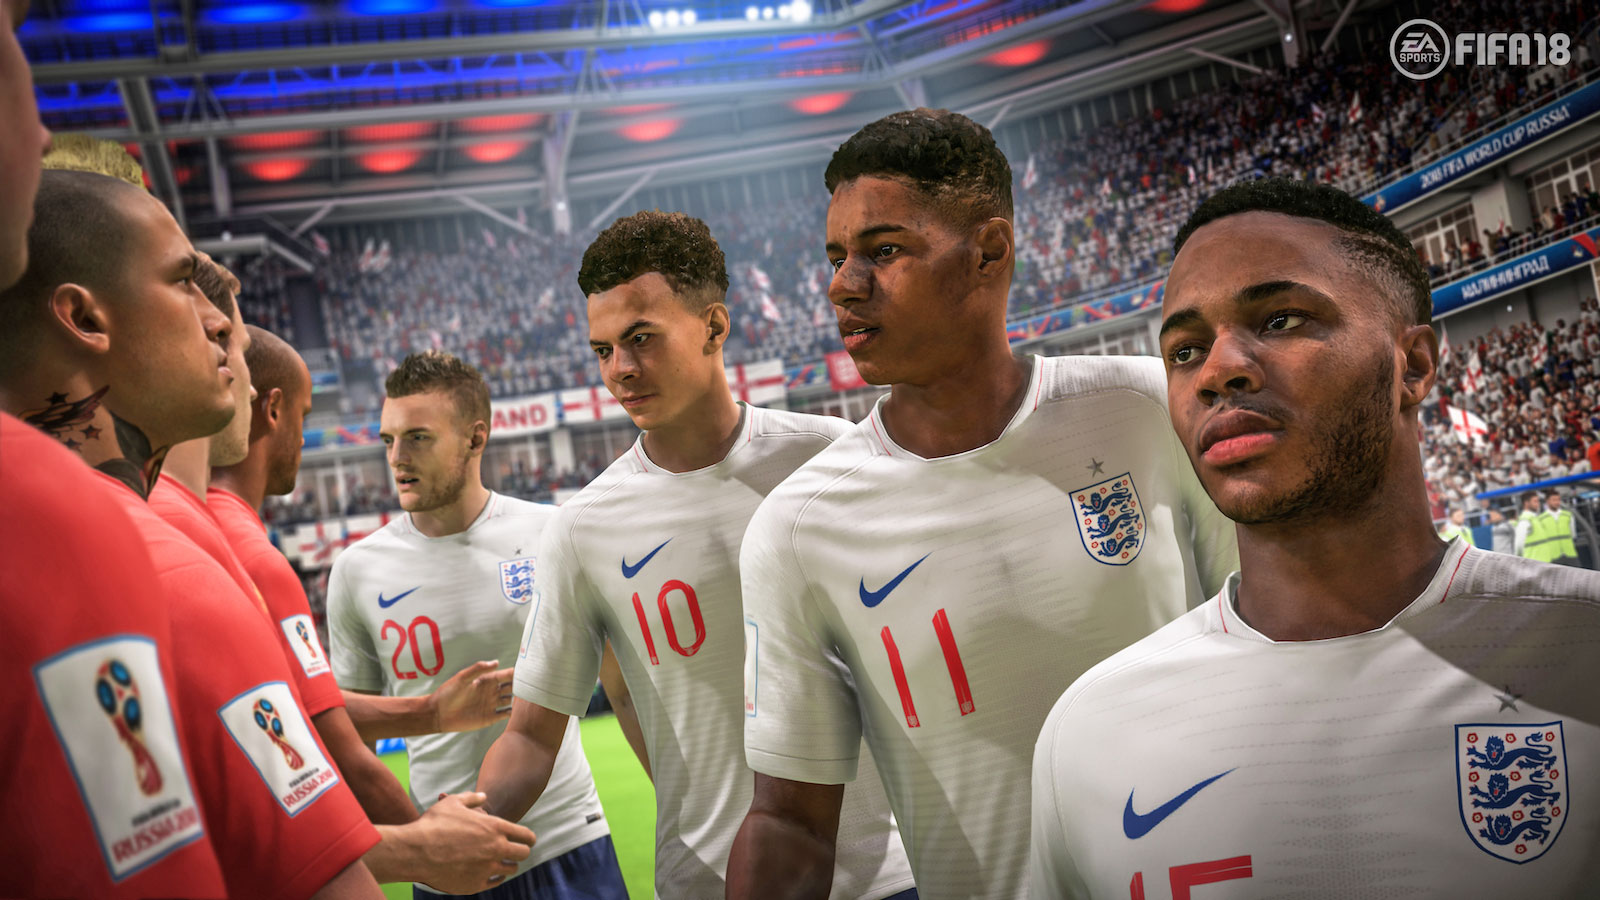 As The Domestic Football Season Starts To Wrap Up All Eyes Are Turning To The World Cup In Russia Ea Unsurprisingly Wants To Celebrate The Competition